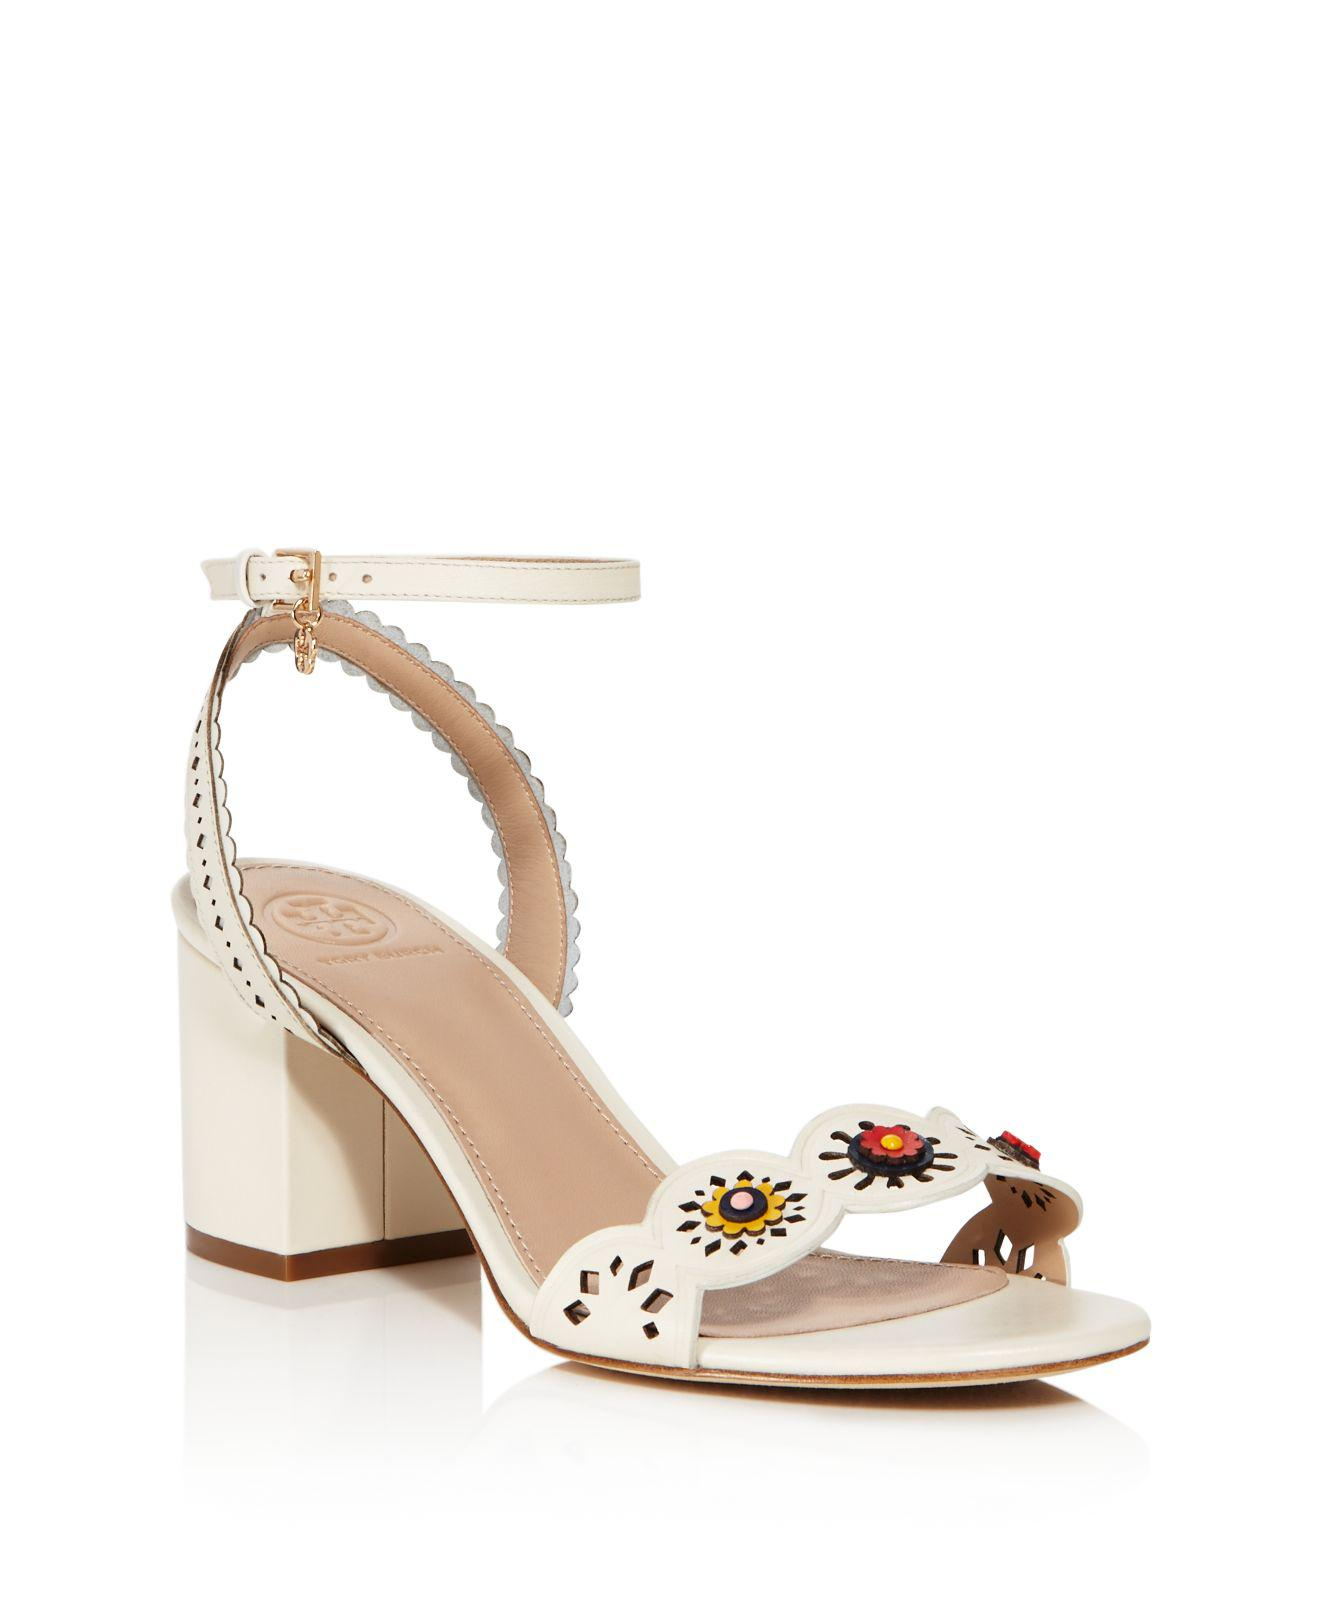 497160b2811 Tory Burch Marguerite Perforated Sandal in White - Lyst